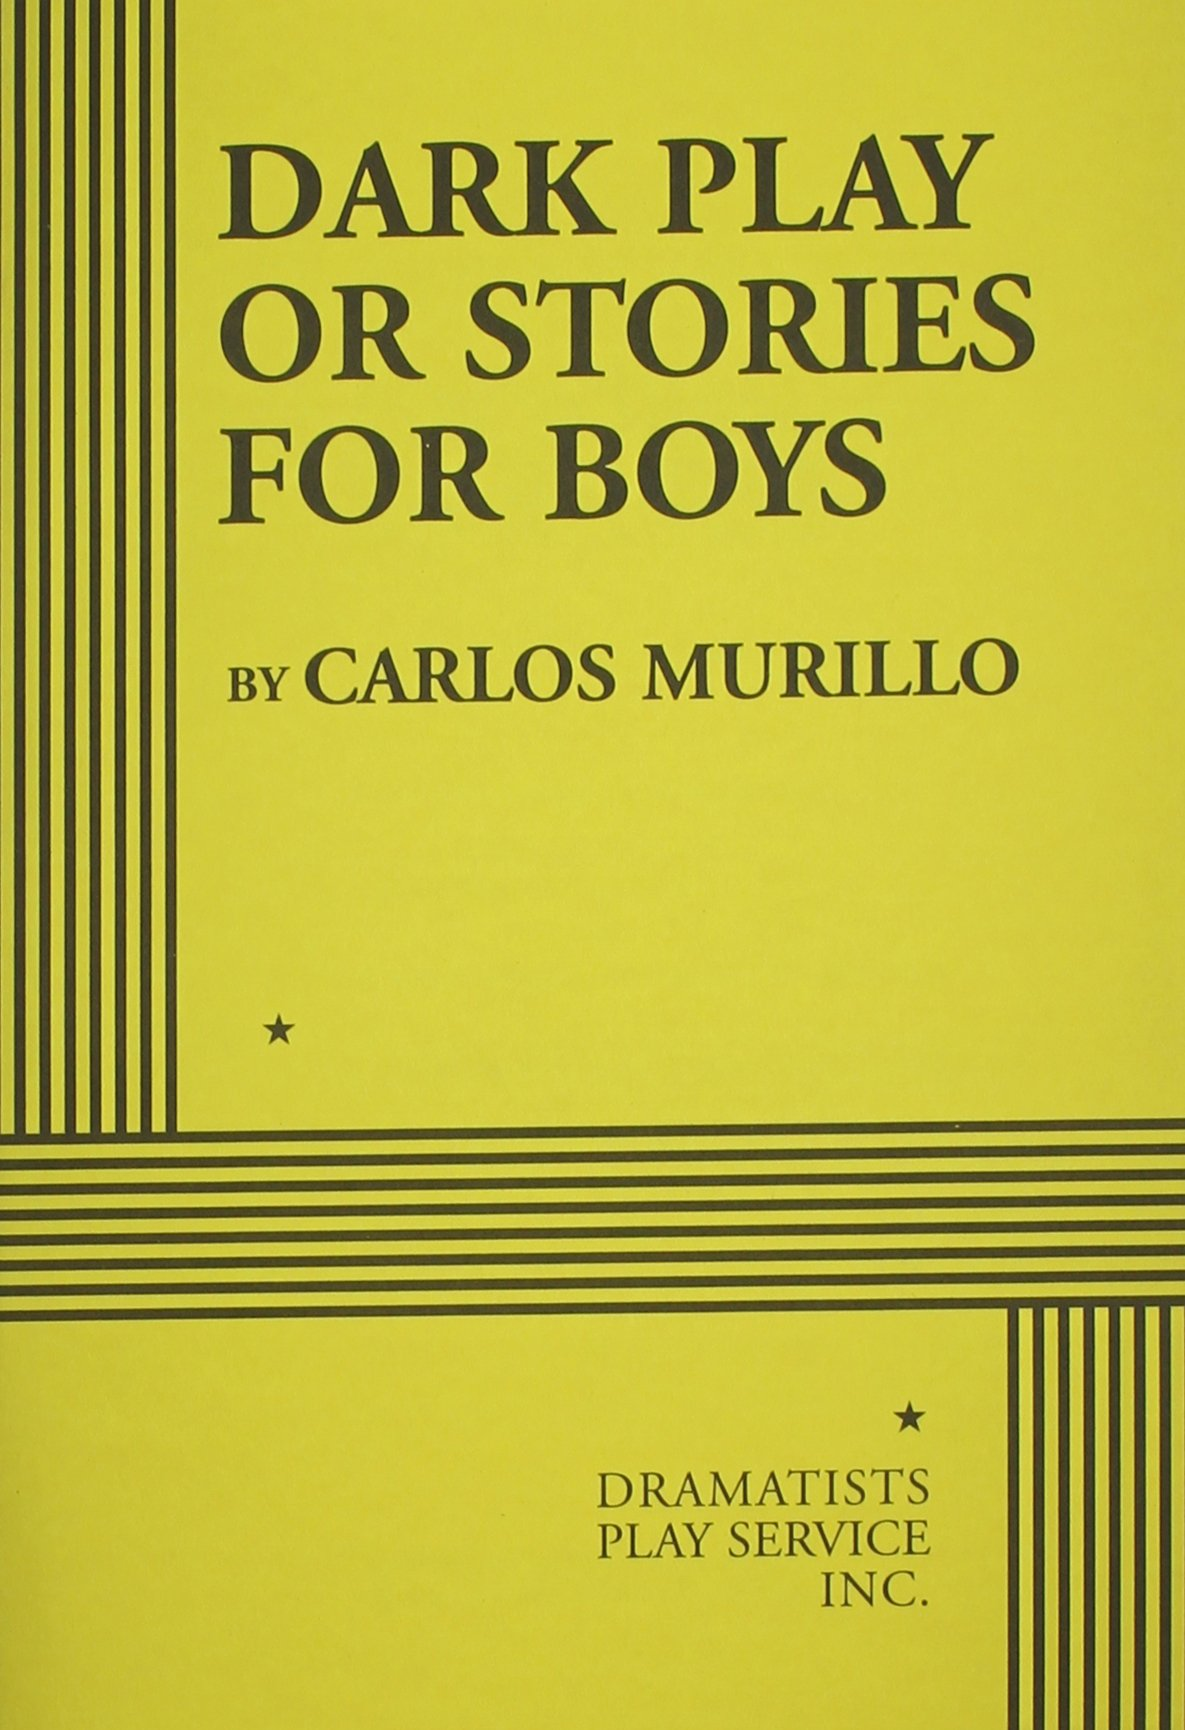 Dark play or stories for boys acting edition carlos murillo dark play or stories for boys acting edition carlos murillo 9780822222828 amazon books fandeluxe Images